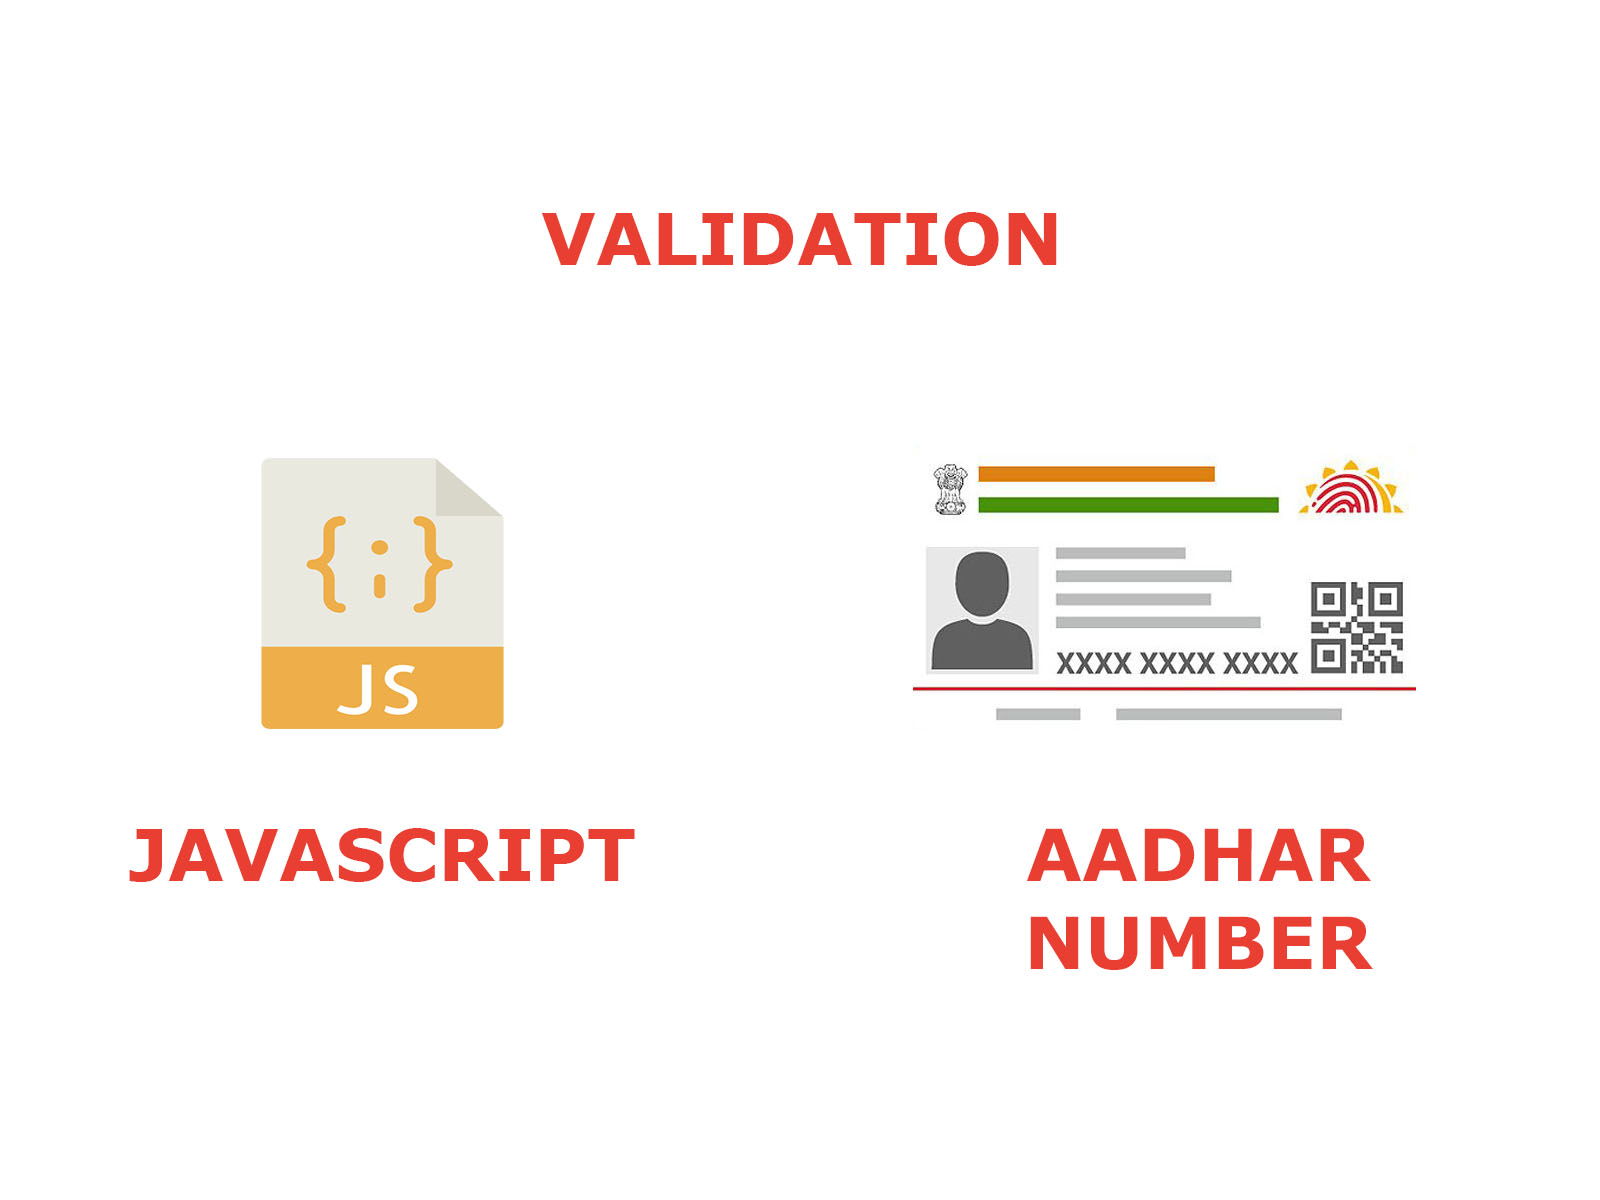 Aadhar number verify with JAVASCRIPT (offline)